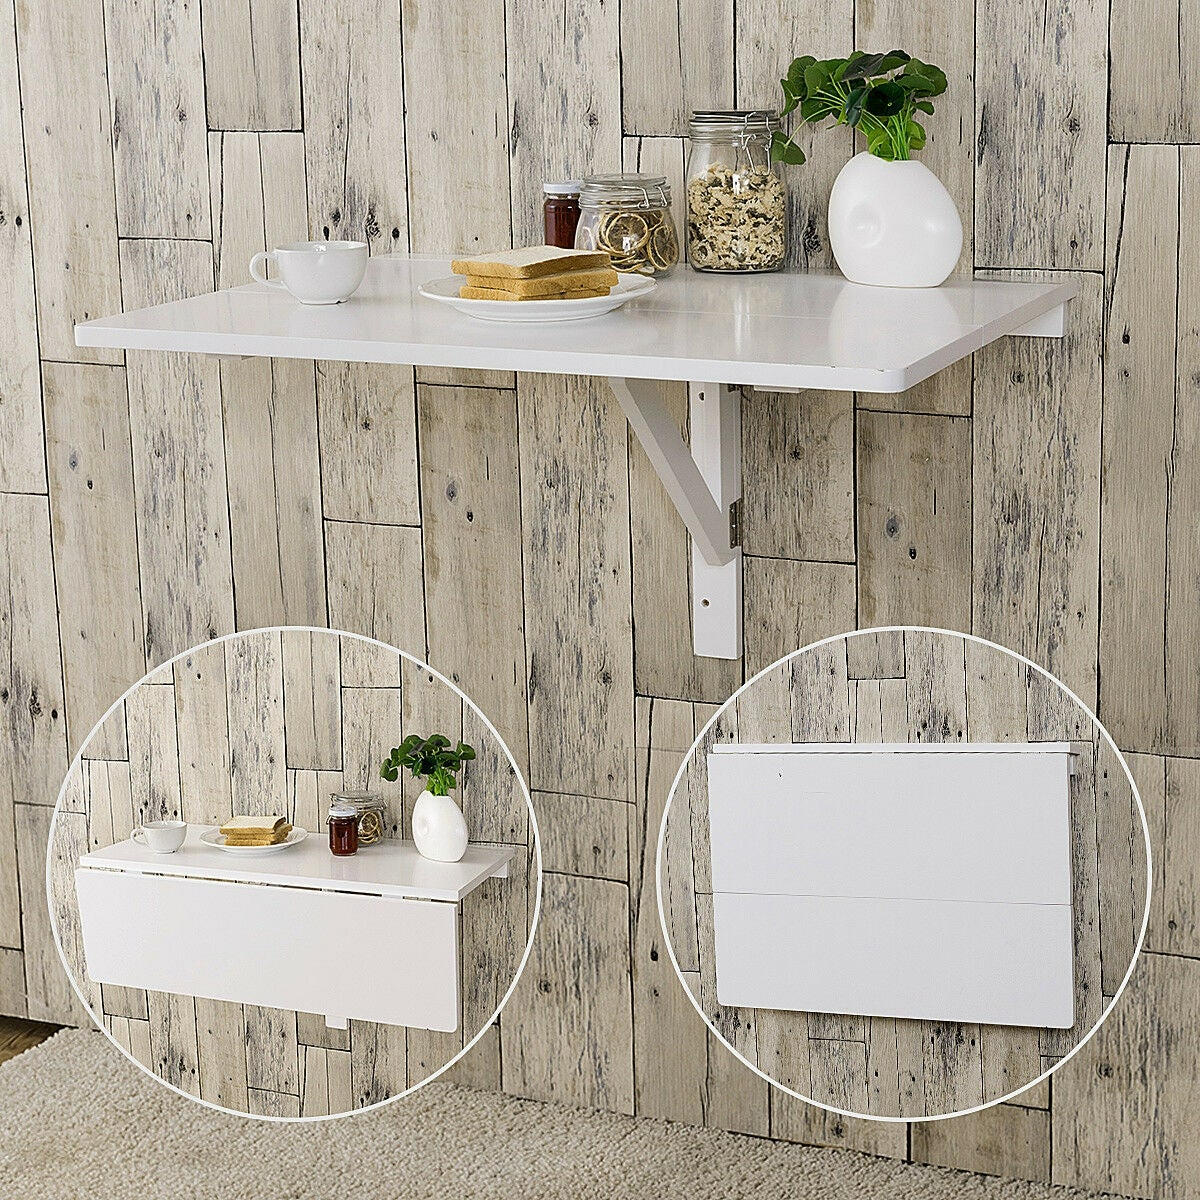 Gymax Wall Mounted Drop Leaf Table Folding Kitchen Dining Desk E Saver White